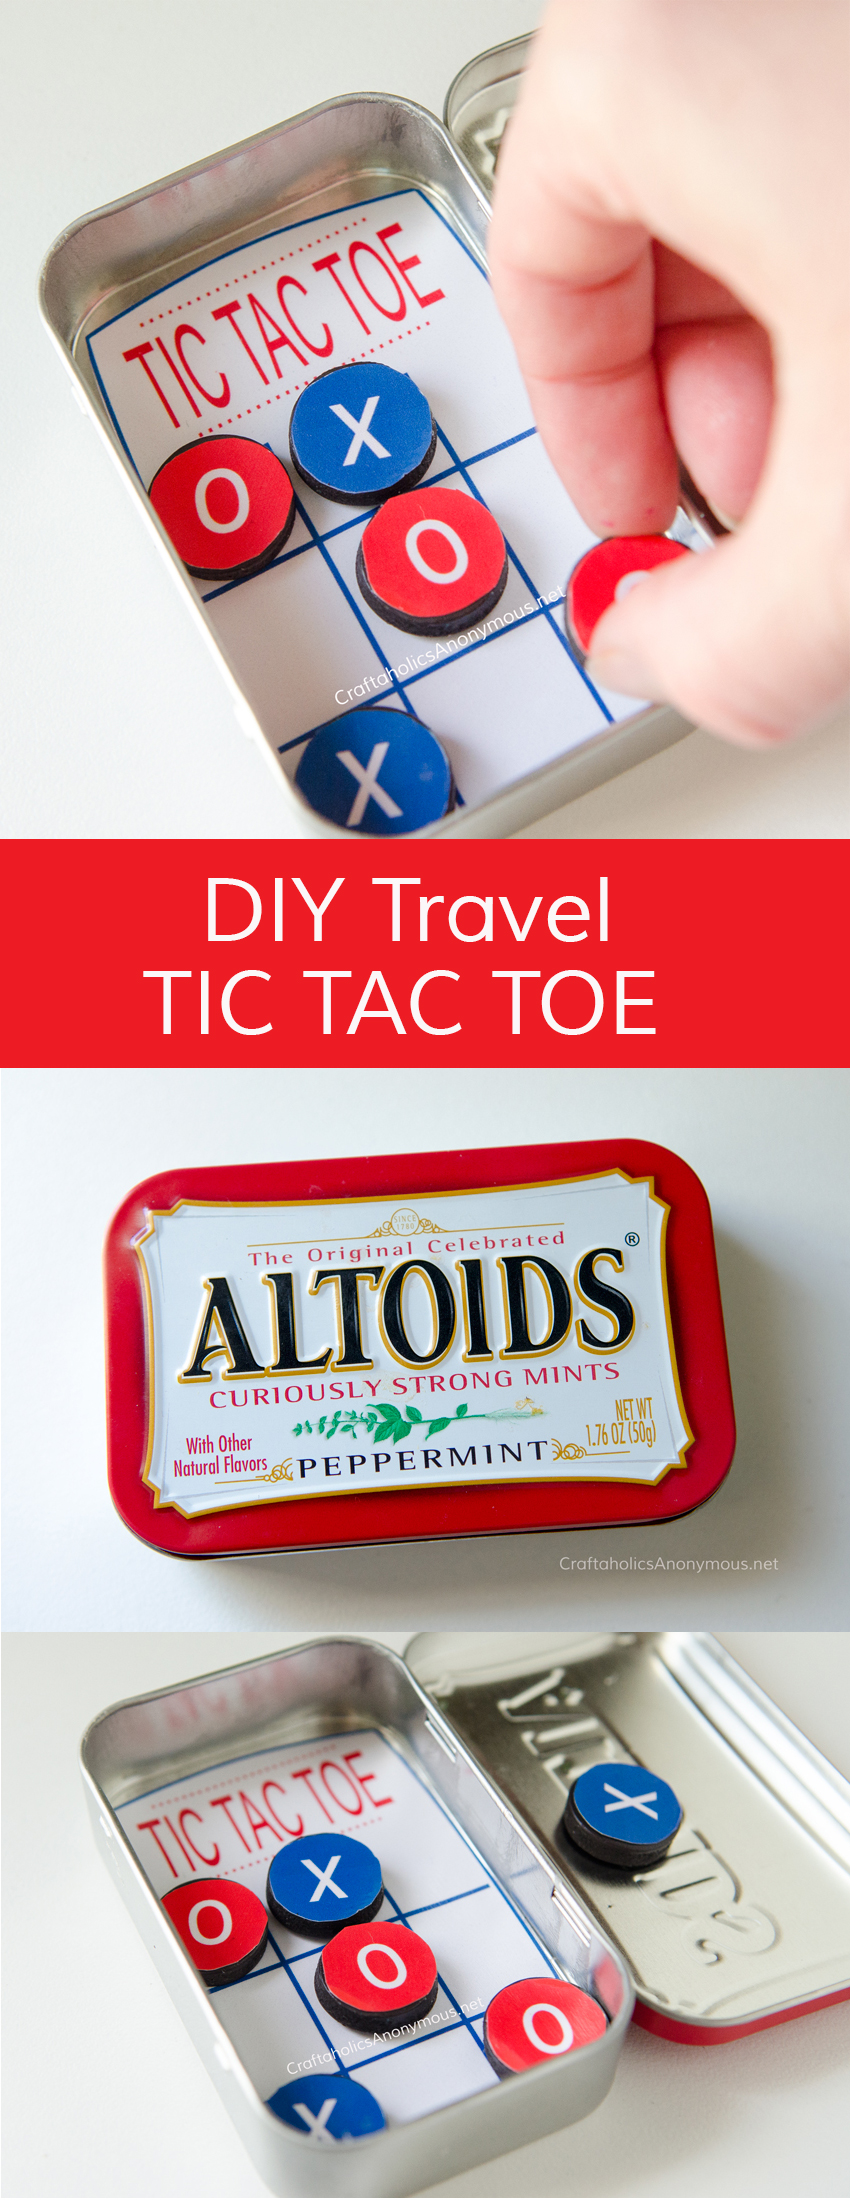 DIY Pocket Tic Tac Toe game made with Altoids tin. Great for Road Trips or church. Great Kids Craft idea for summer or even a handmade Christmas gifts.